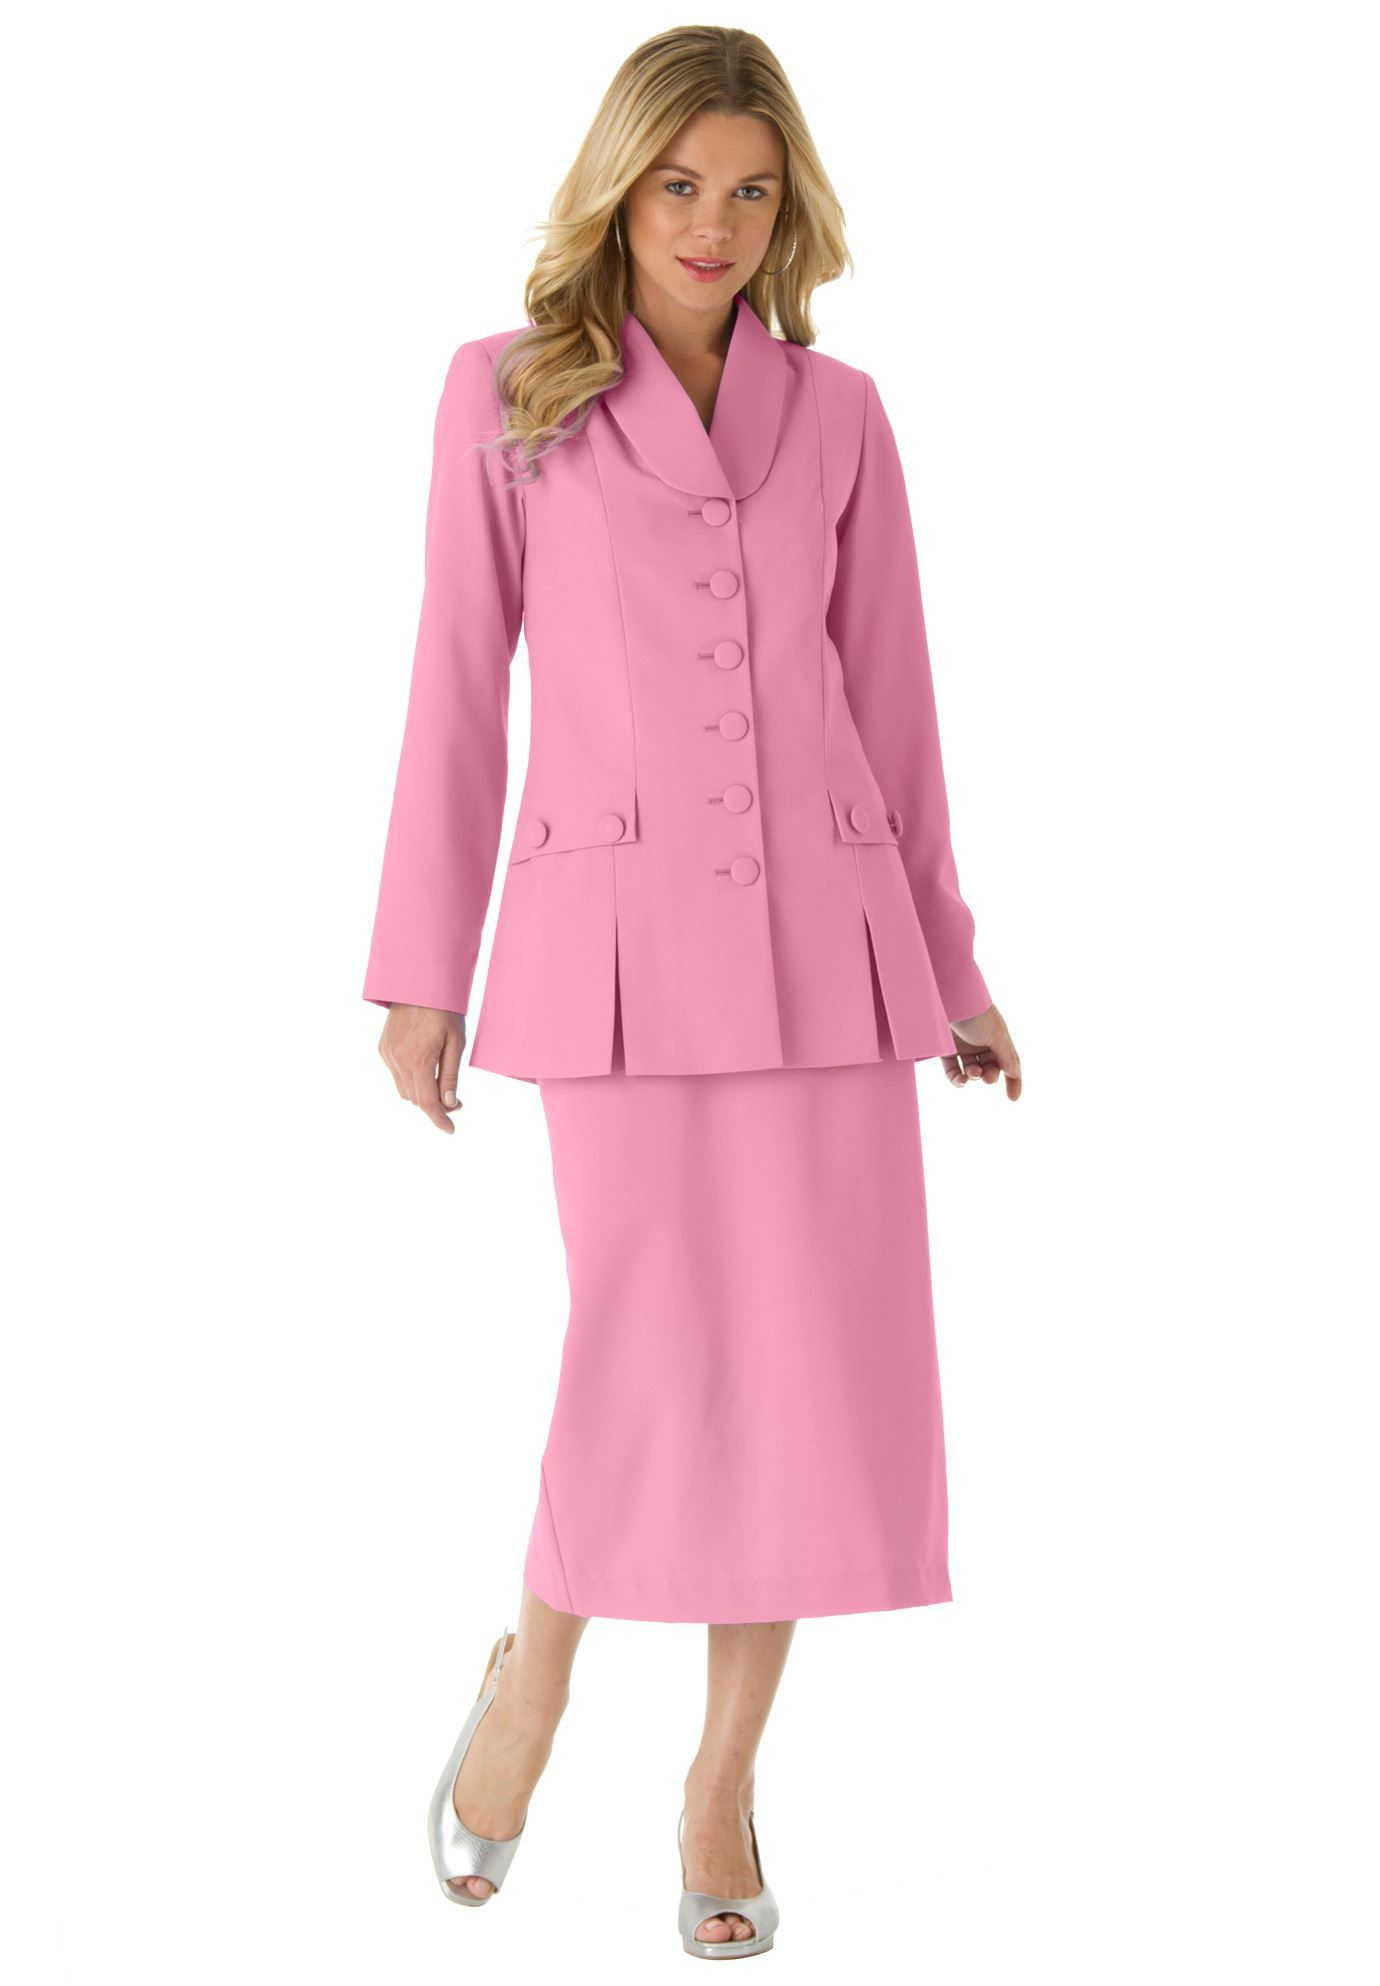 c295d48d0a45f 10-Button Skirt Suit